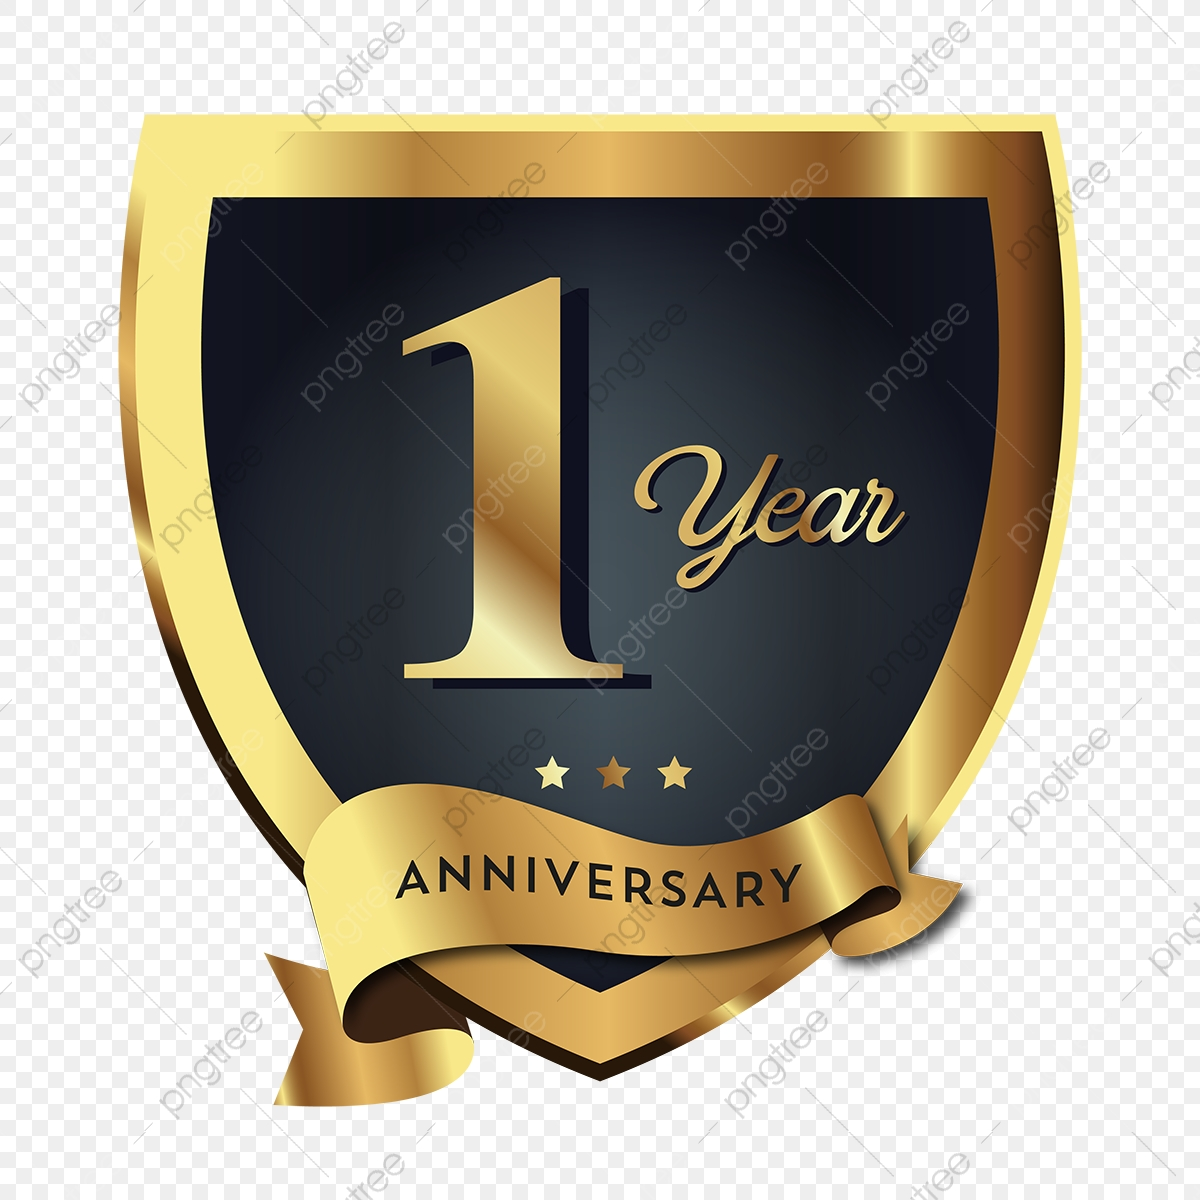 1st anniversary png images vector and psd files free download on pngtree https pngtree com freepng 1st anniversary badge logo icon 3575118 html